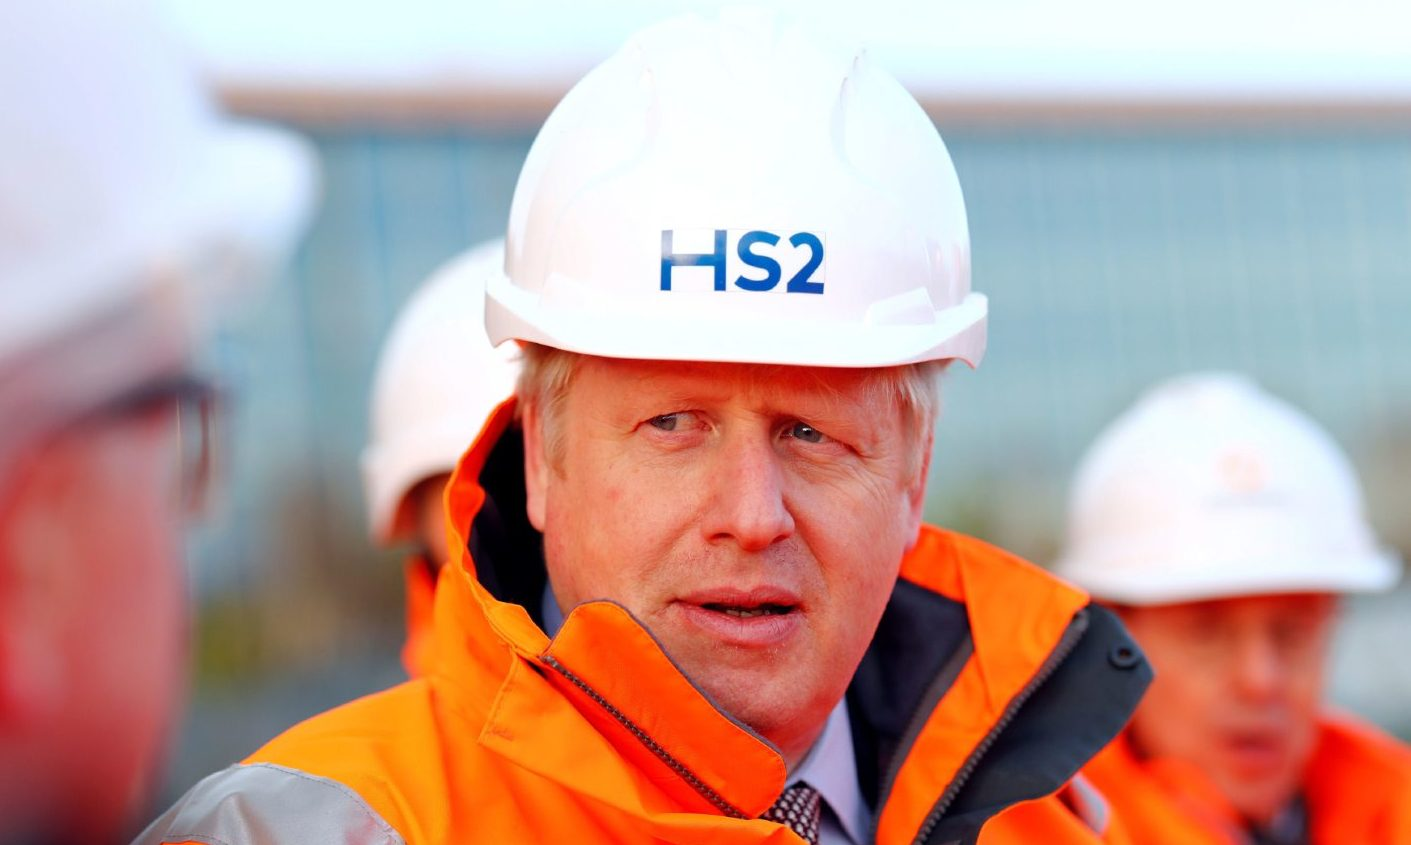 Prime Minister Boris Johnson during a visit to Curzon Street railway station in Birmingham where the HS2 rail project is under construction.